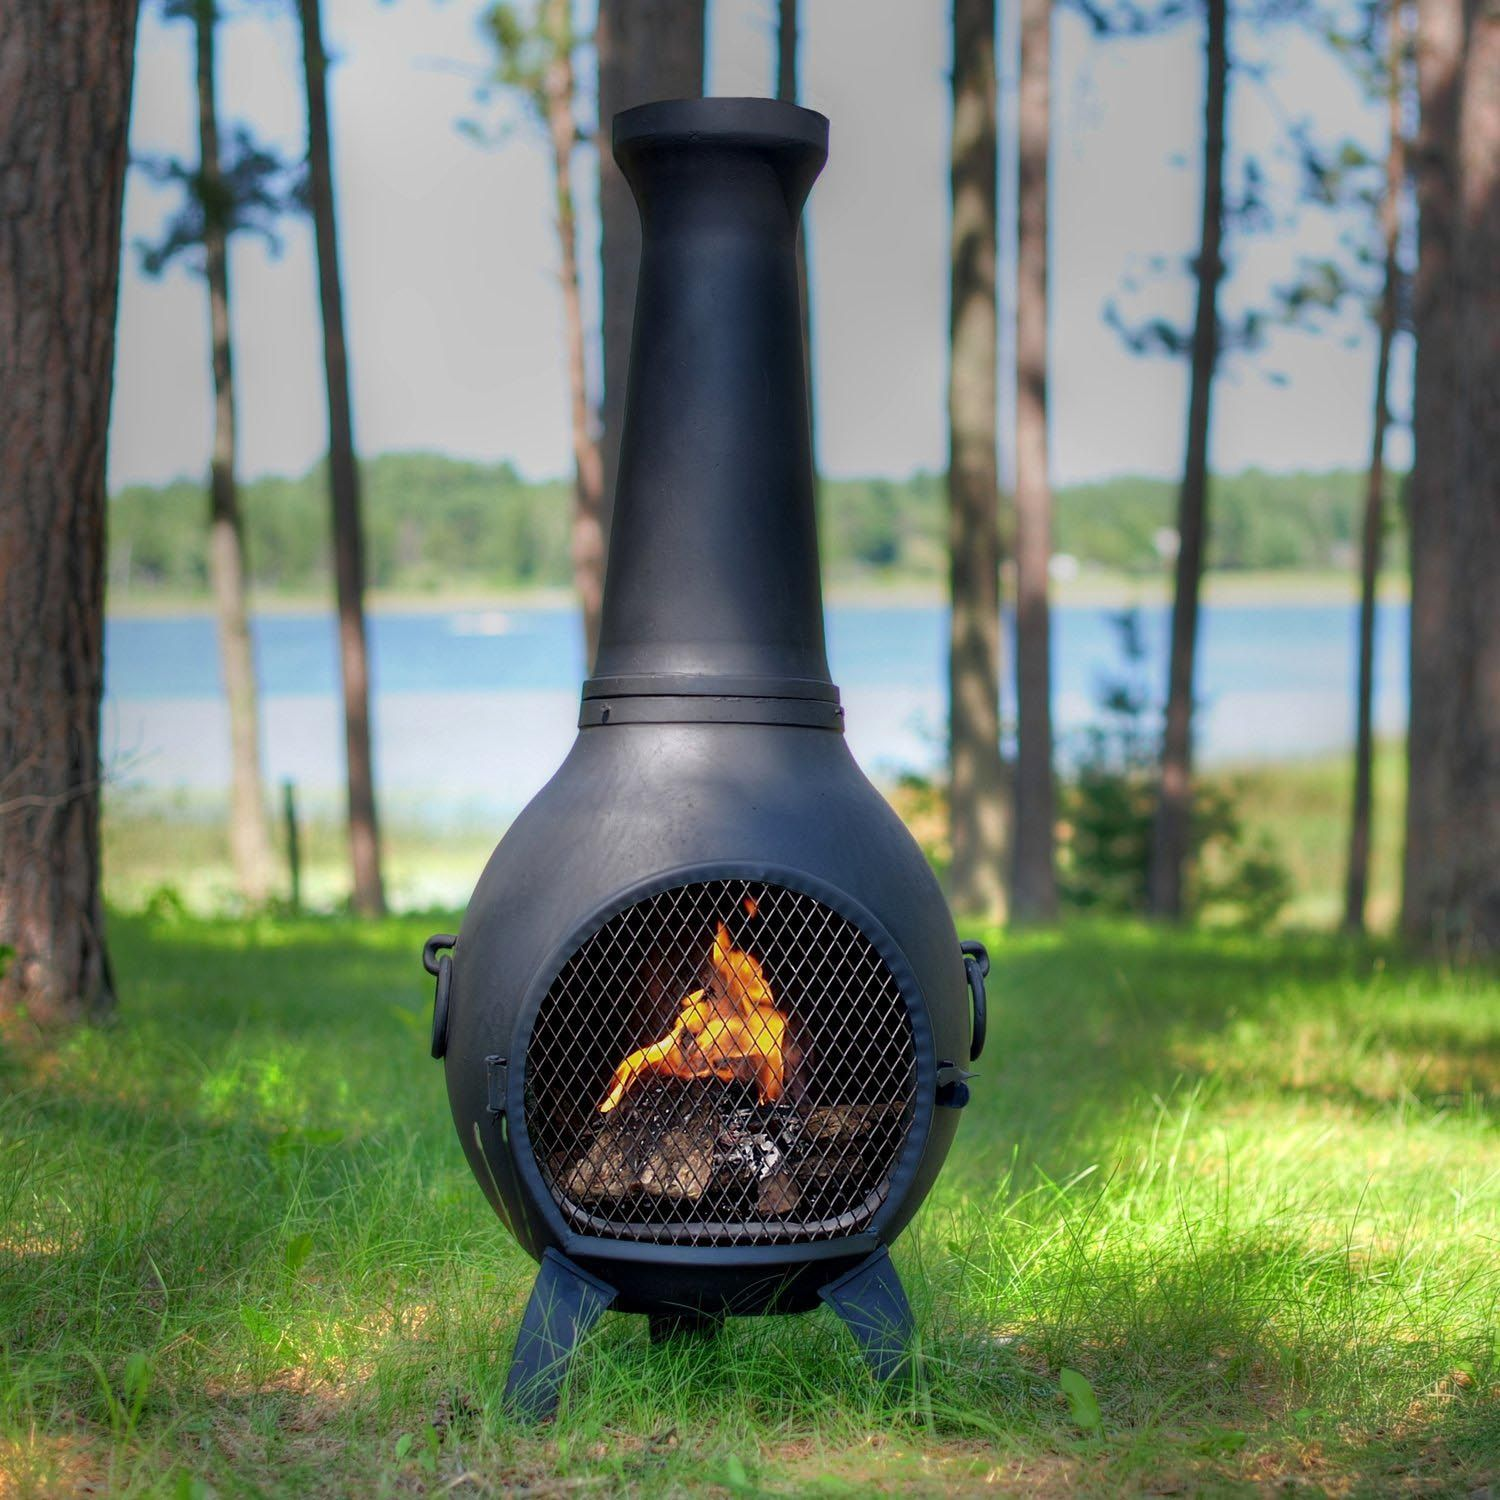 Fire Pits Chimineas: Clay Fire Pit Chimney